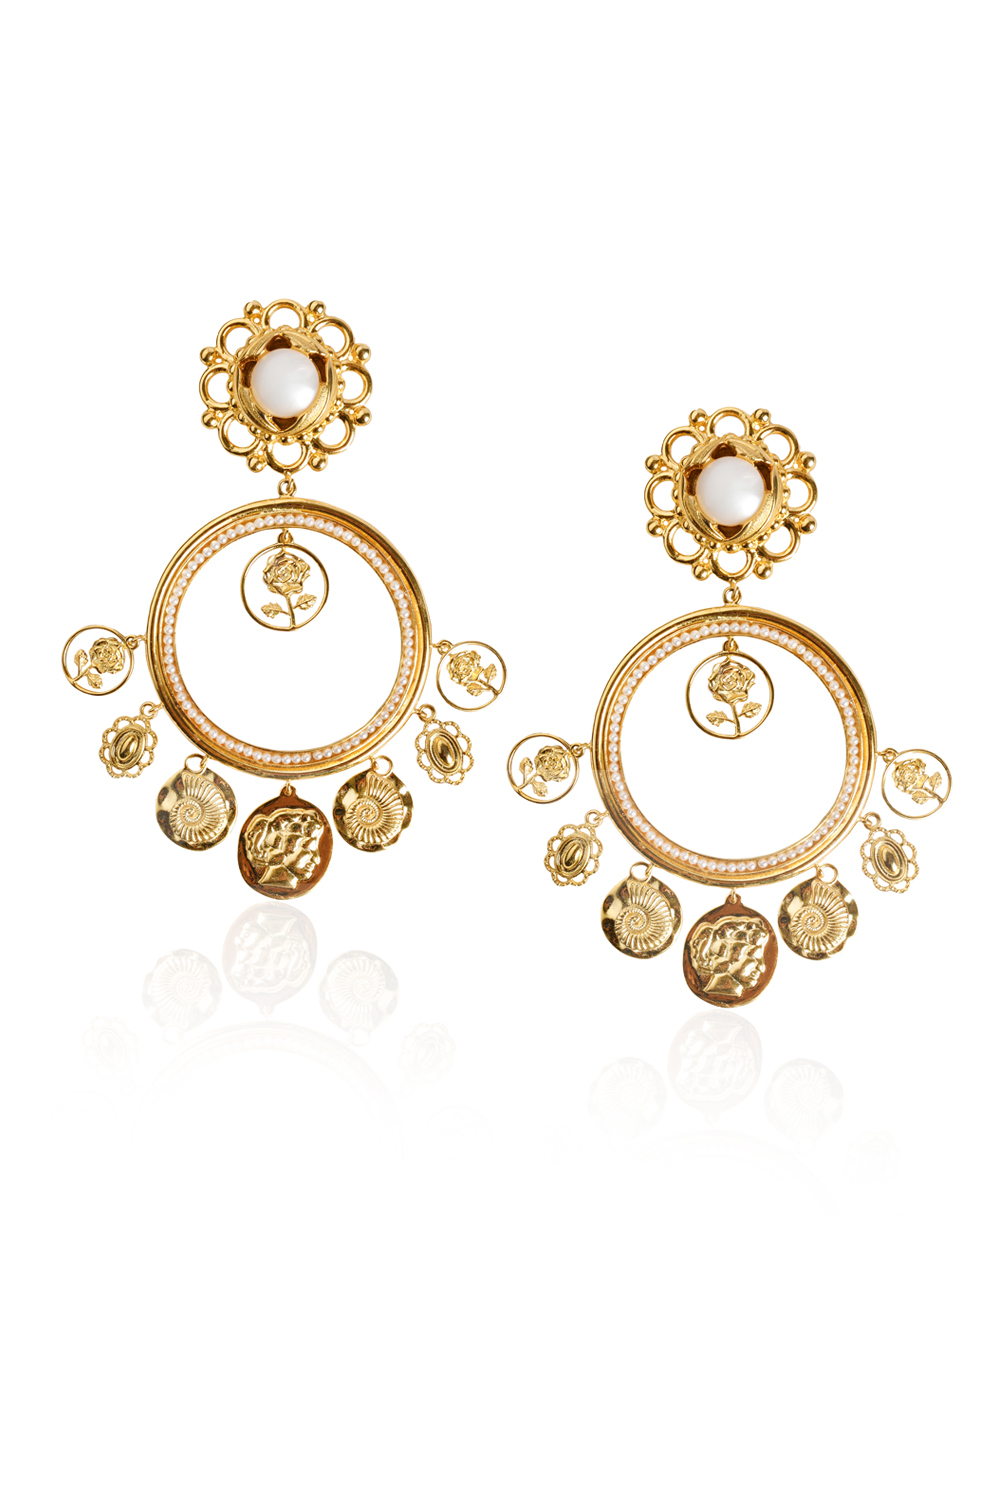 Radhika Agrawal Jewels